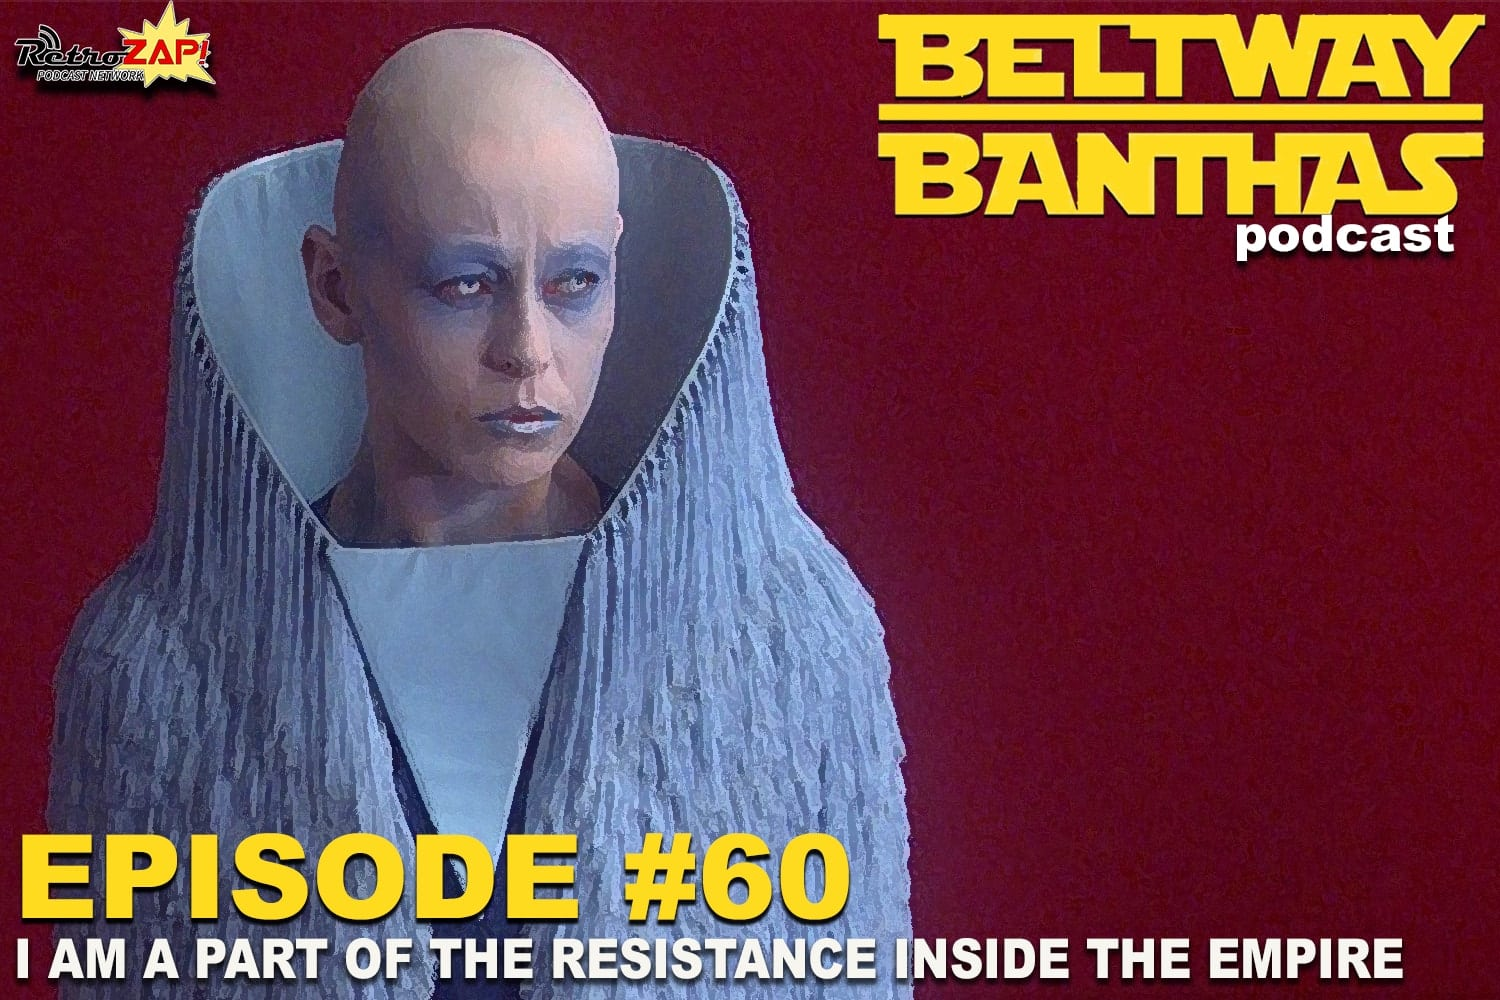 Beltway Banthas #60: I am a Part of the Resistance Inside the Empire